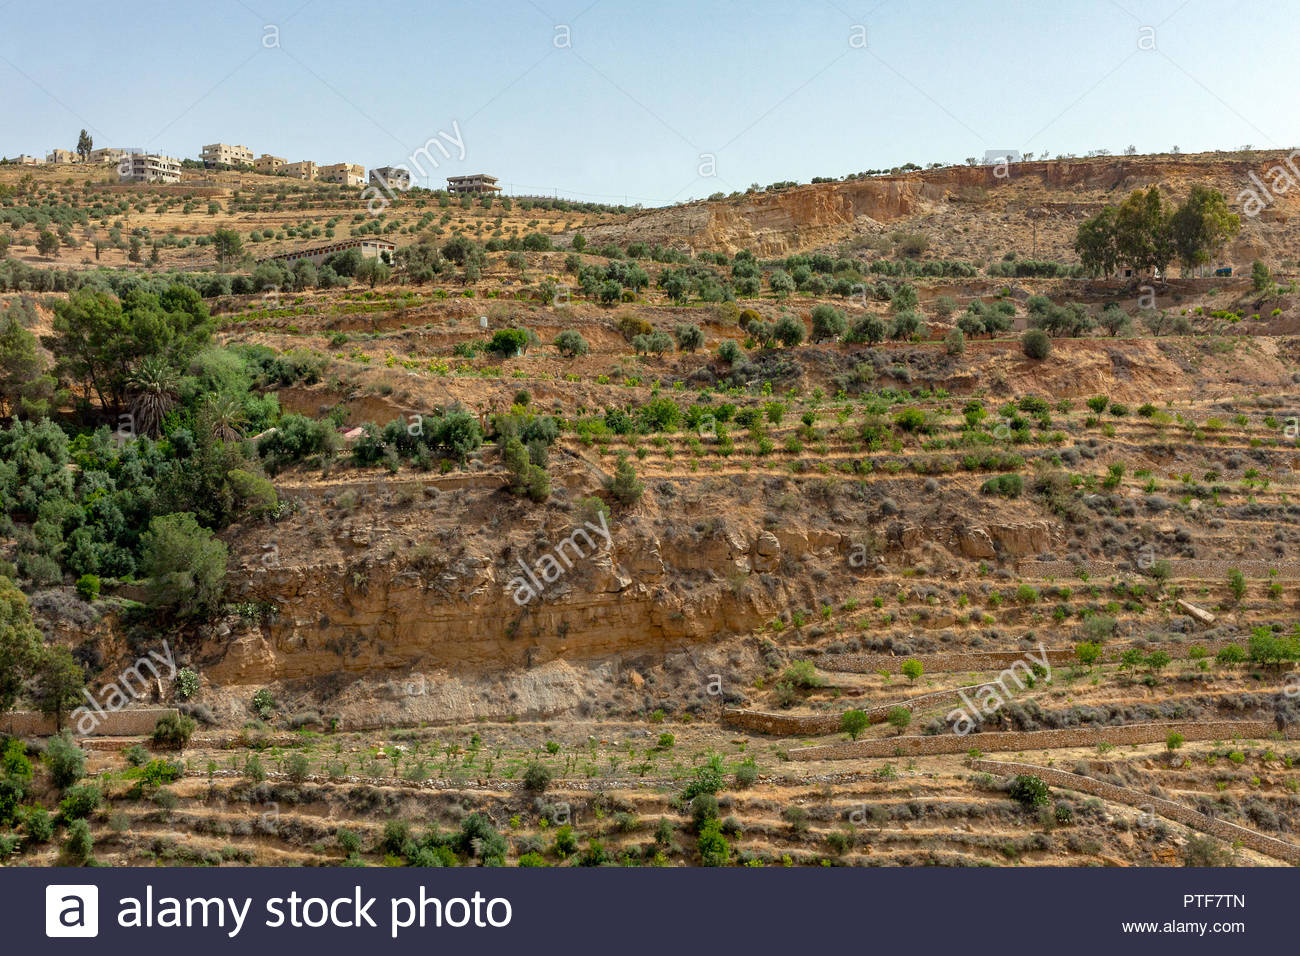 Terraced Olive and Tree Farm/Garden in Rural Jordan, Middle East 2018 - Stock Image